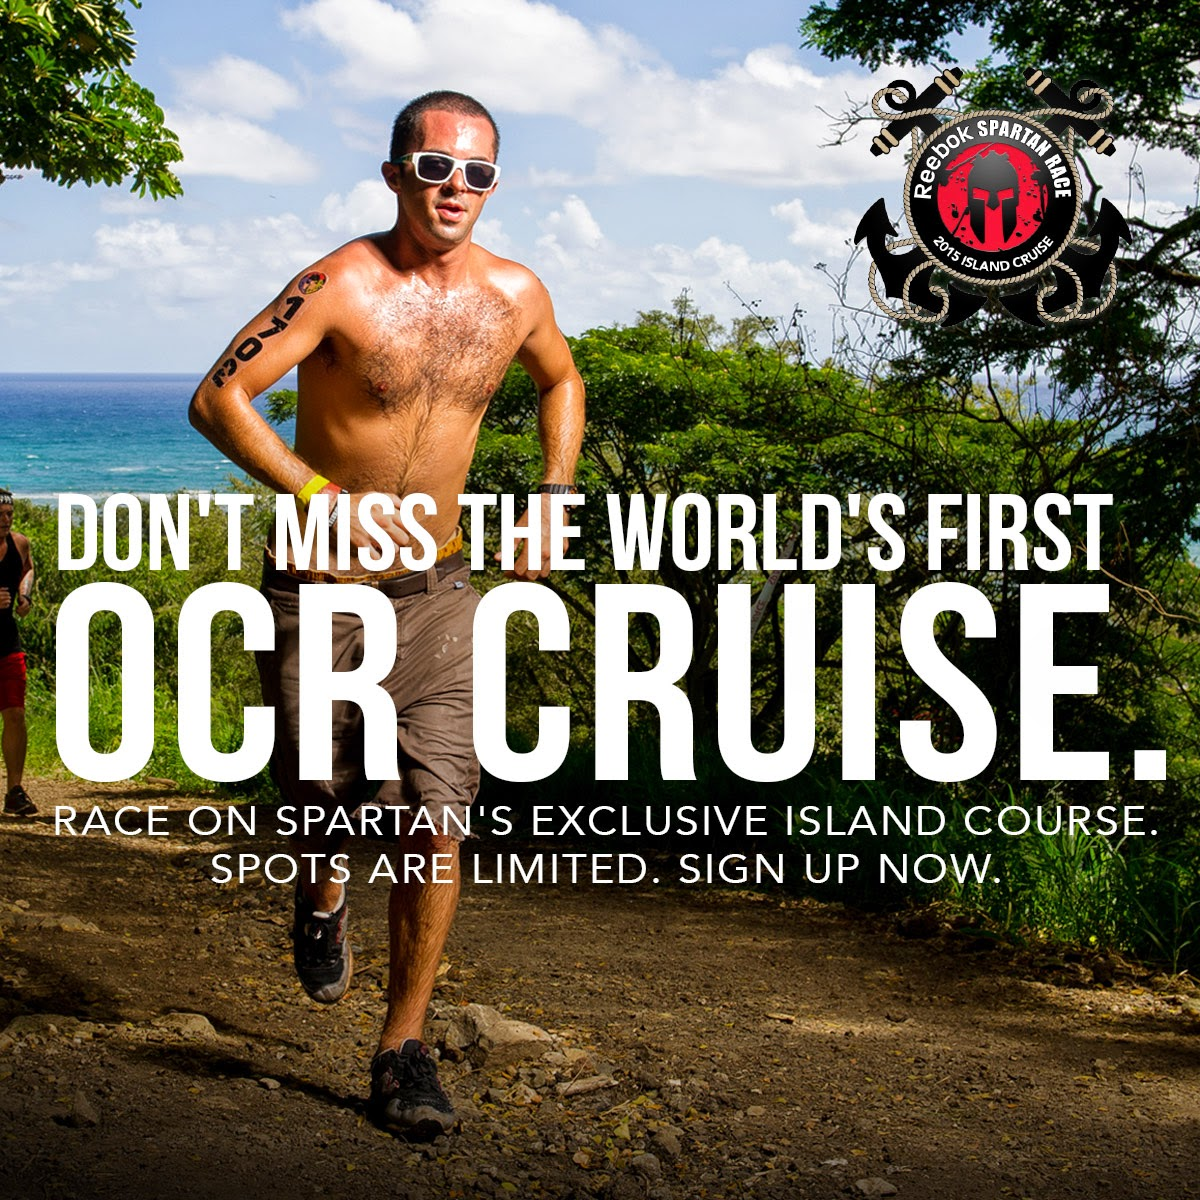 SPARTAN RACE CRUISE